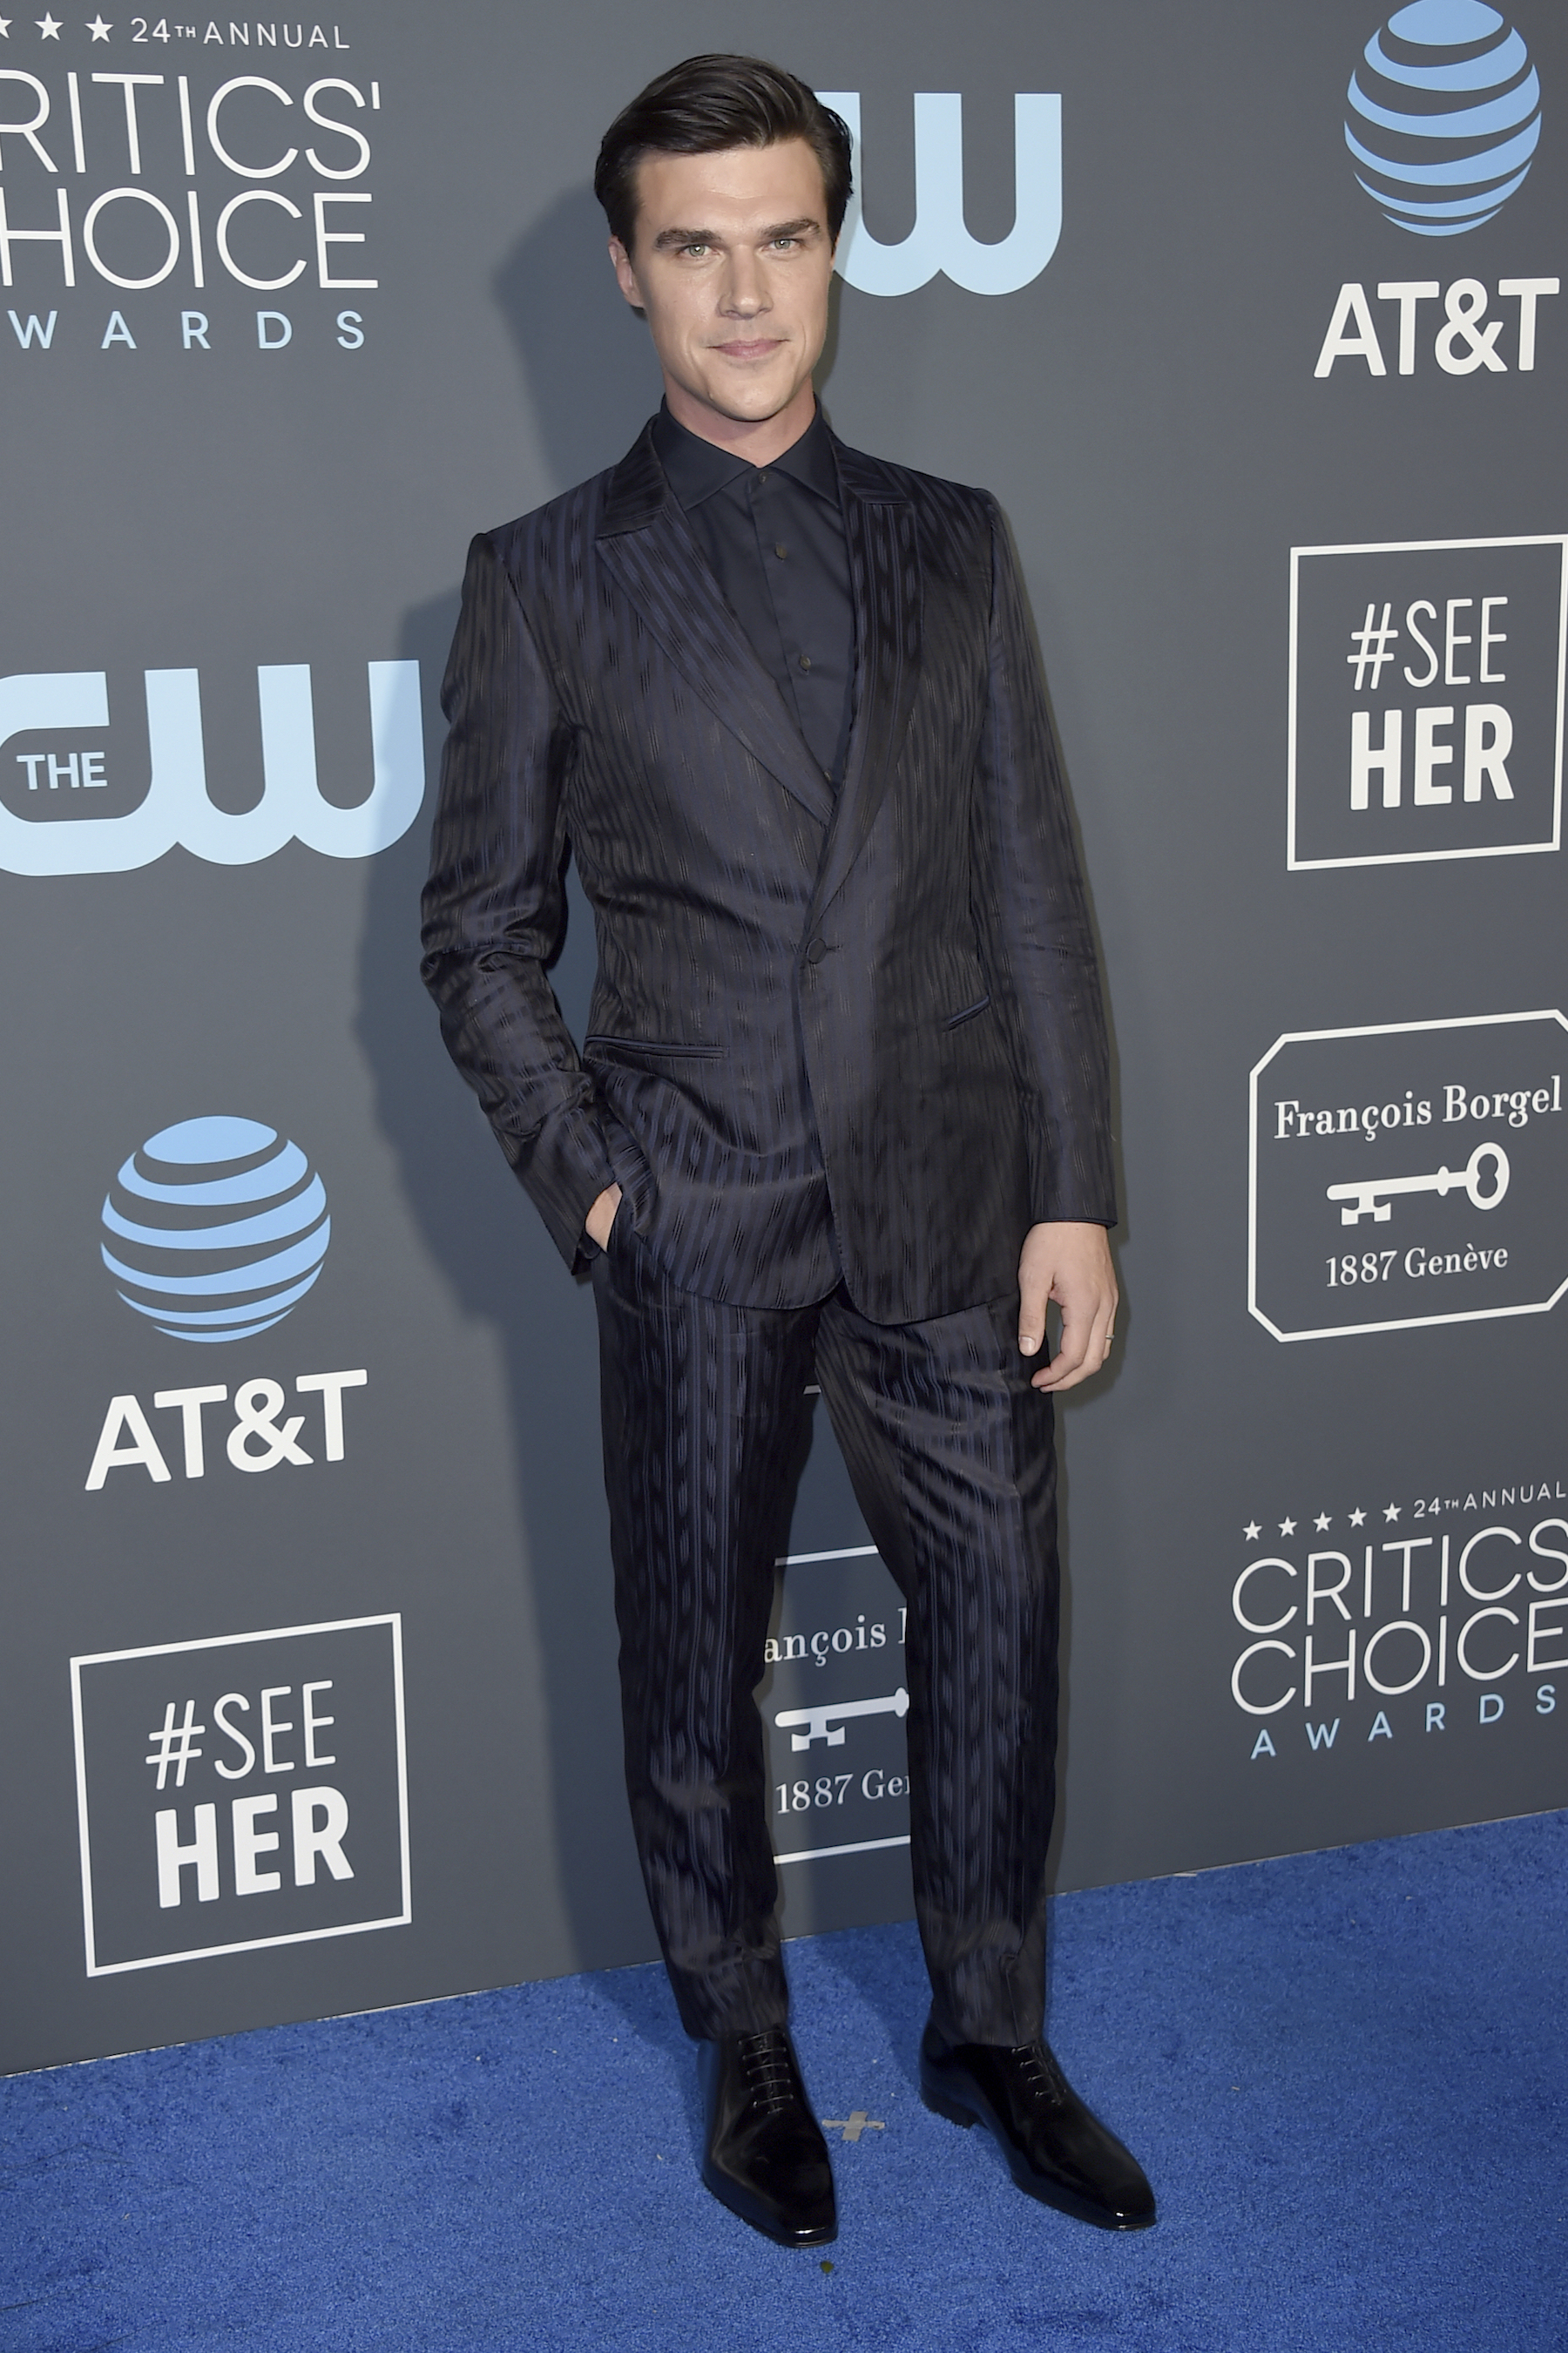 "<div class=""meta image-caption""><div class=""origin-logo origin-image ap""><span>AP</span></div><span class=""caption-text"">Finn Wittrock arrives at the 24th annual Critics' Choice Awards on Sunday, Jan. 13, 2019, at the Barker Hangar in Santa Monica, Calif. (Jordan Strauss/Invision/AP)</span></div>"